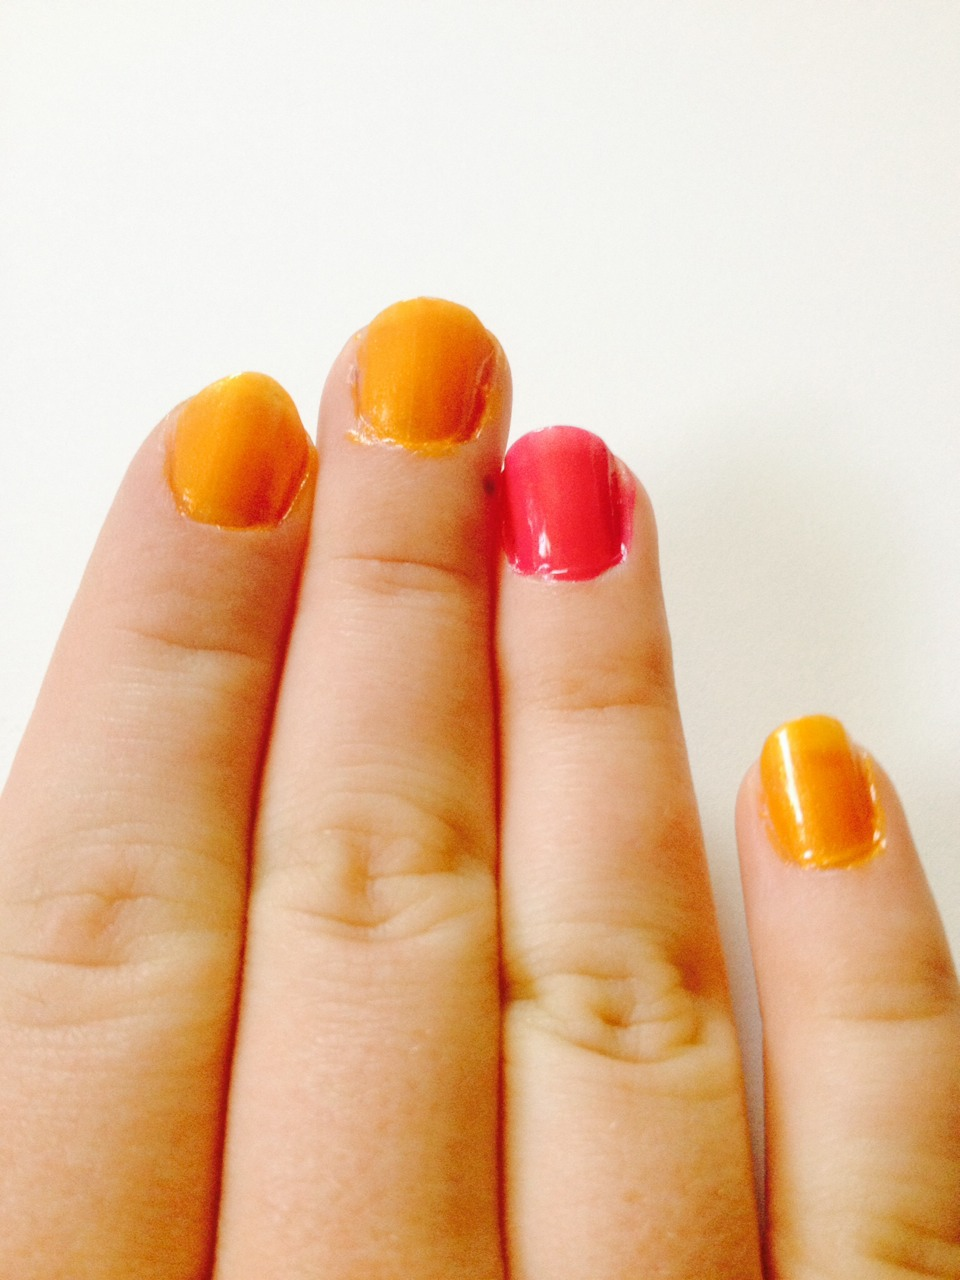 Paint one nail on each hand pink, then paint the rest orange.